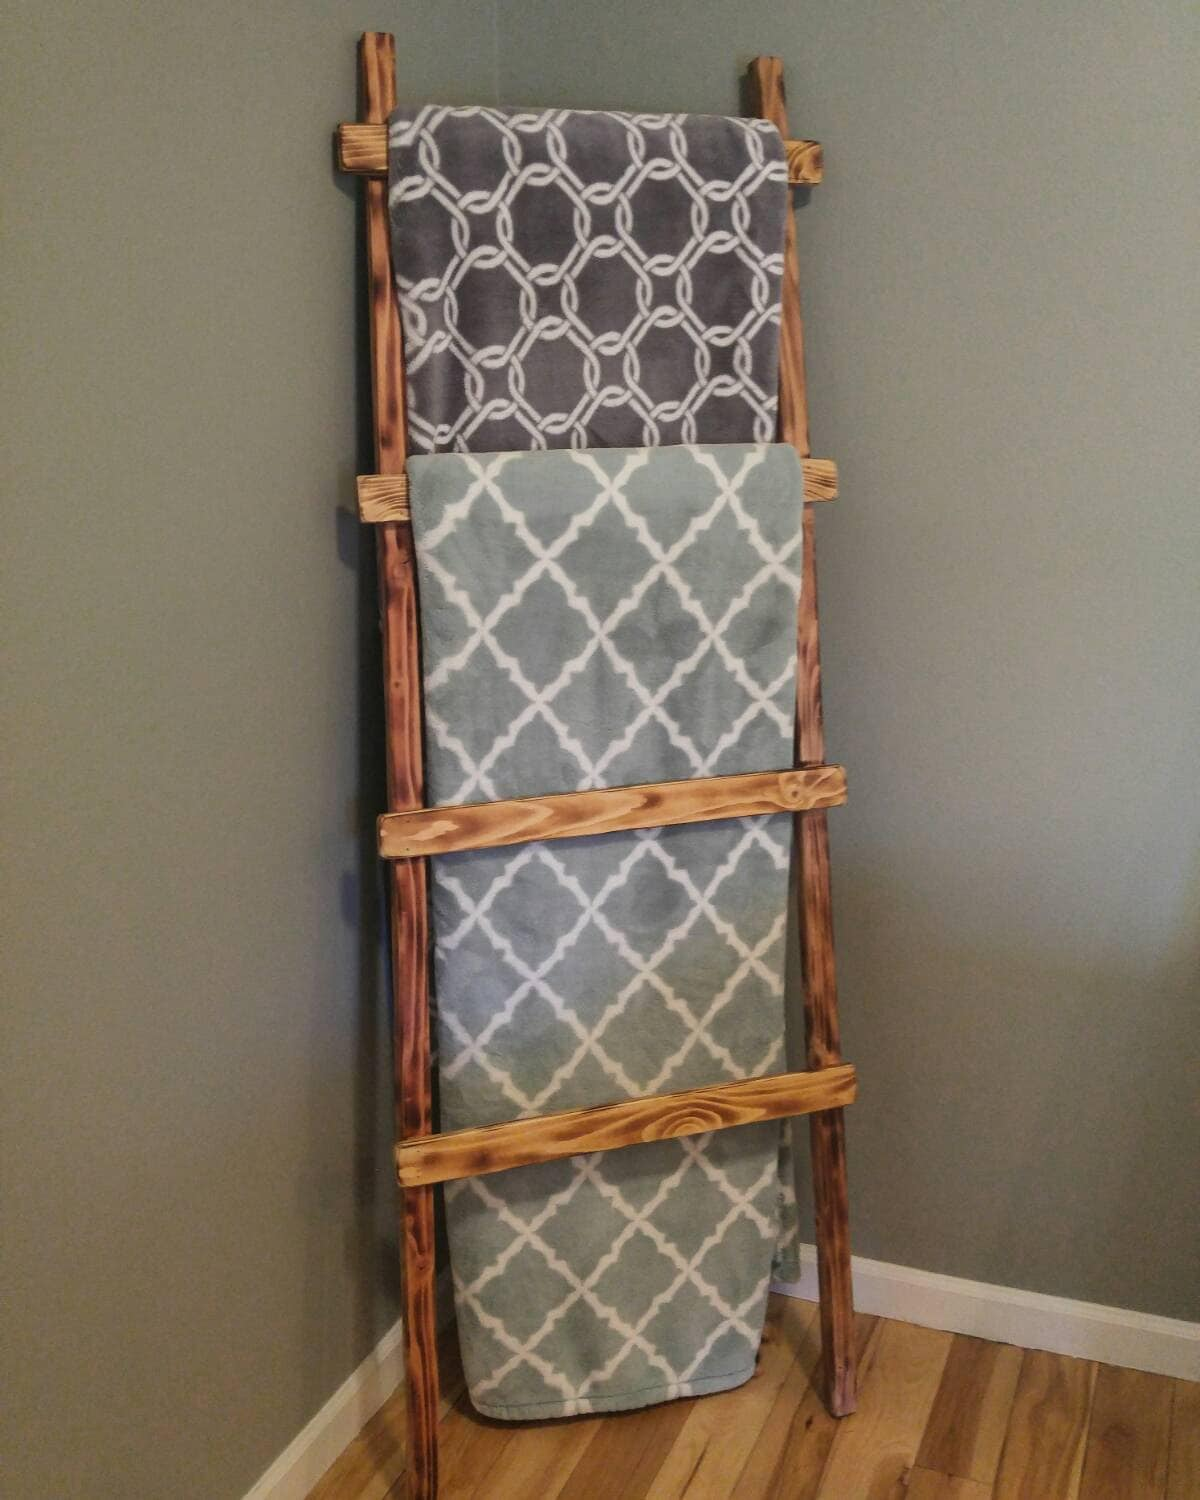 Wood ladderblanket ladder rustic home decor by csquaredcustoms for Decor ladder